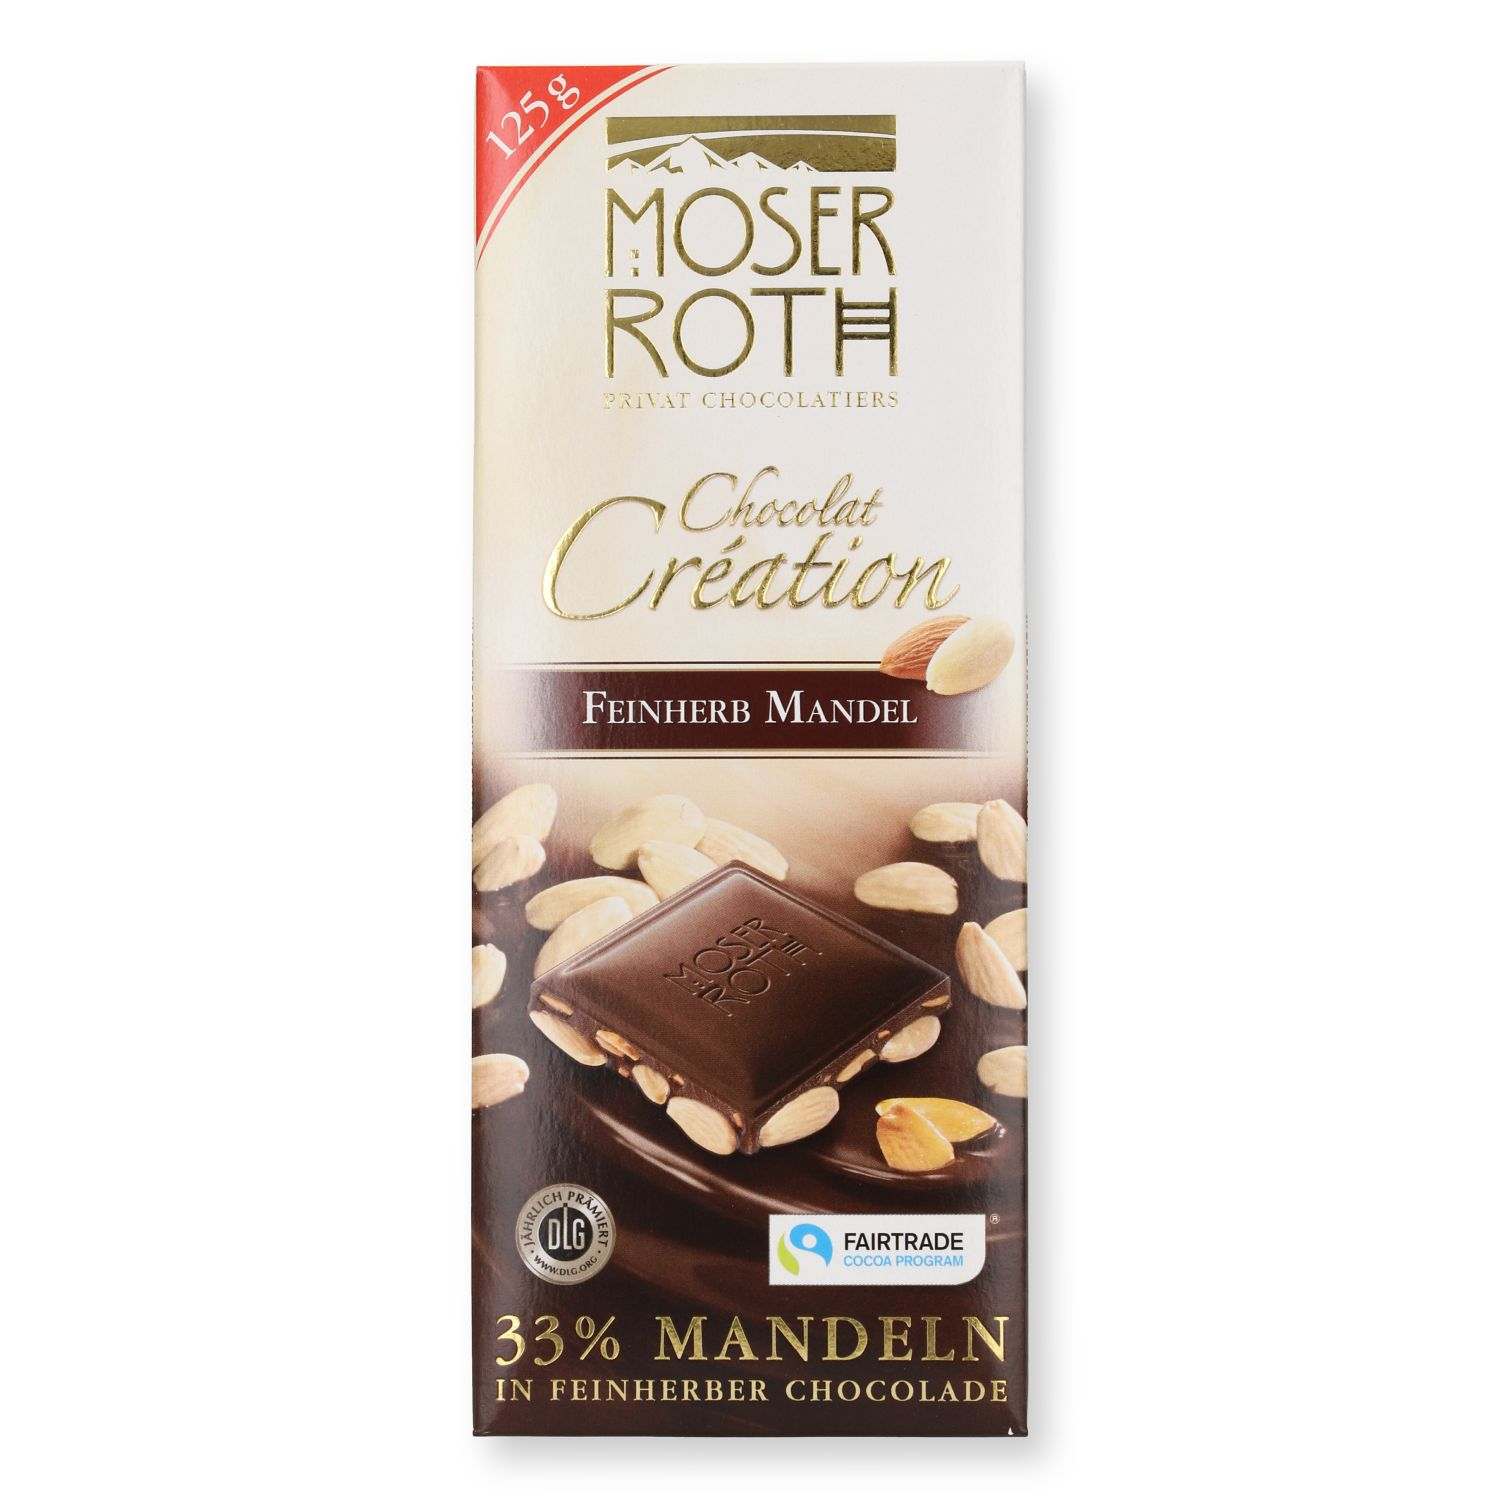 Moser Roth Chocolat Création 125g